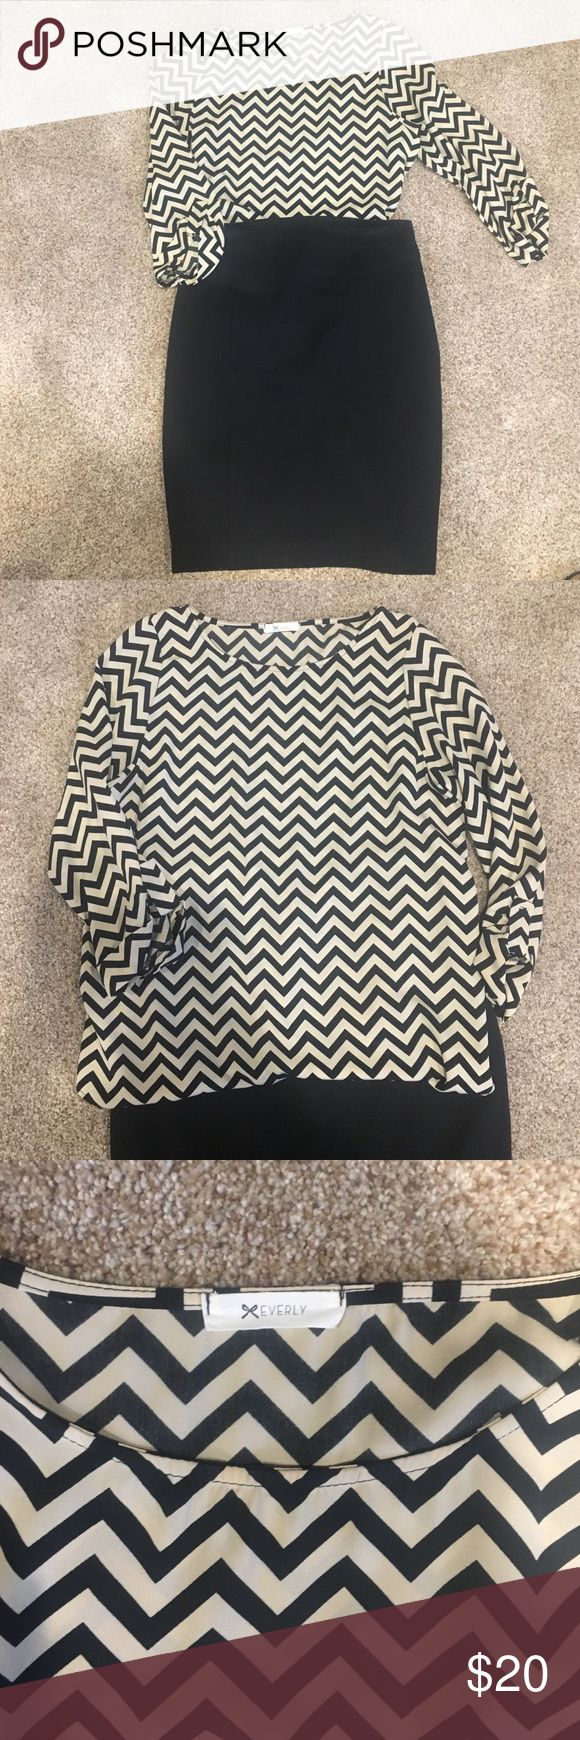 Evenly chevron top medium Chiffon chevron top in taupe and black. Size medium. Worn minimally. Everly Tops Blouses